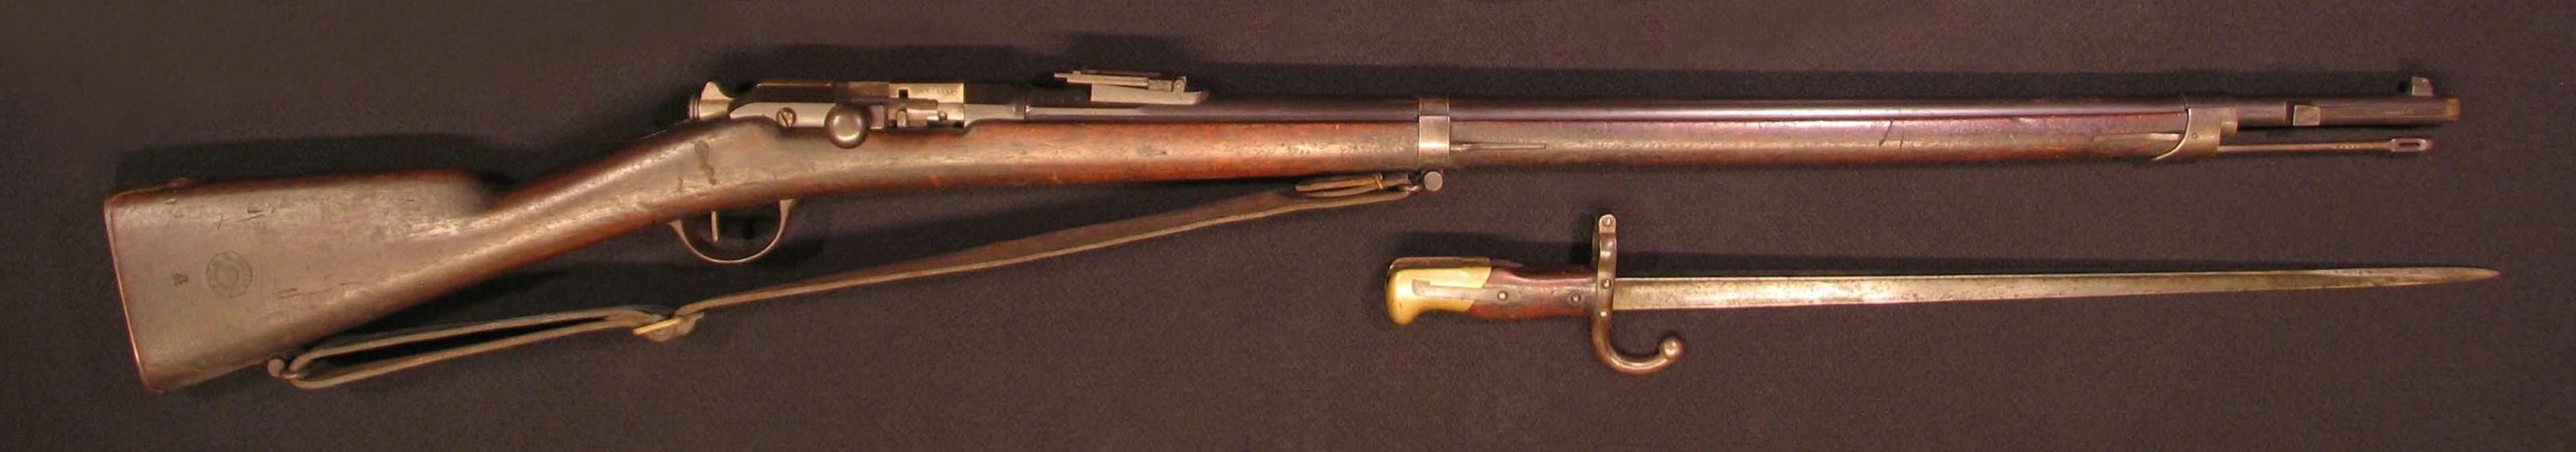 Click image for larger version.  Name:French Mle 1874 Gras Infantry Rifle 01R.JPG Views:30 Size:168.9 KB ID:570706